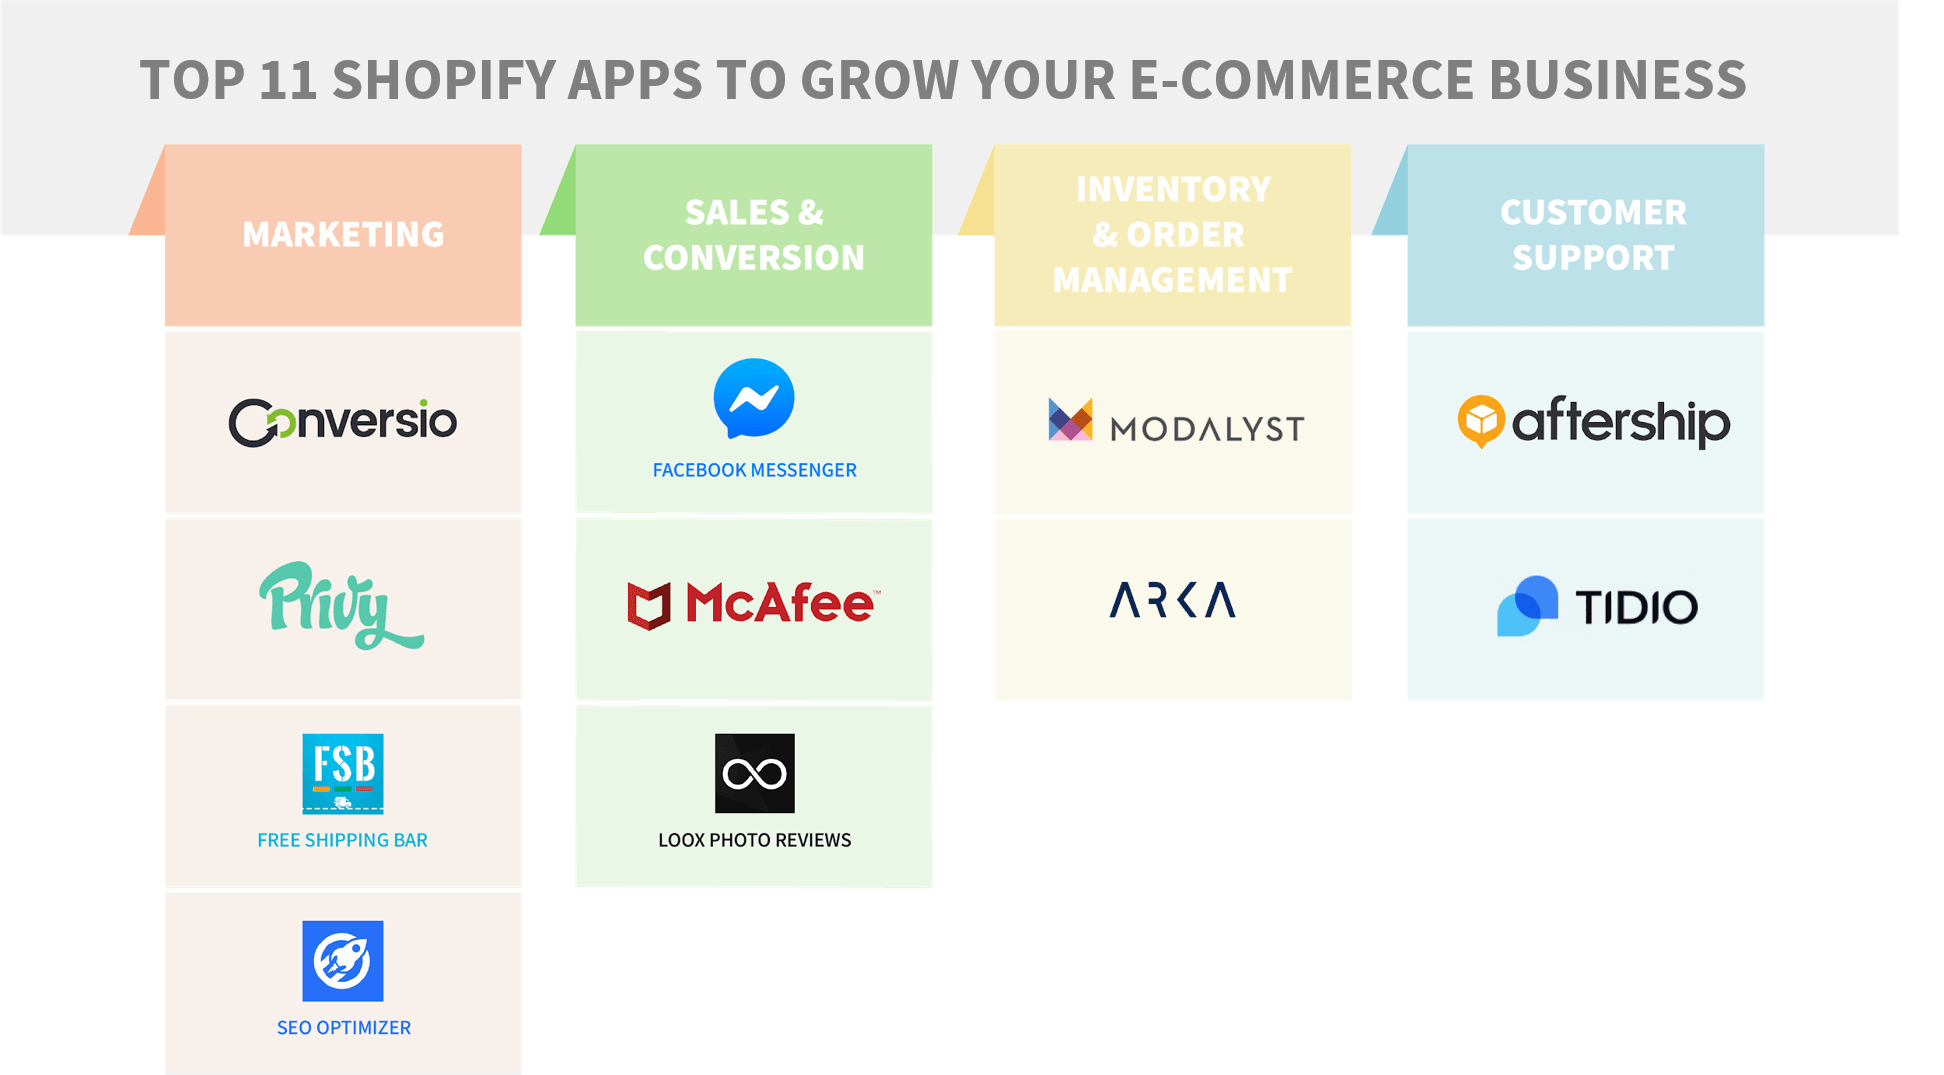 Top 11 Shopify apps to grow e-commerce businesses